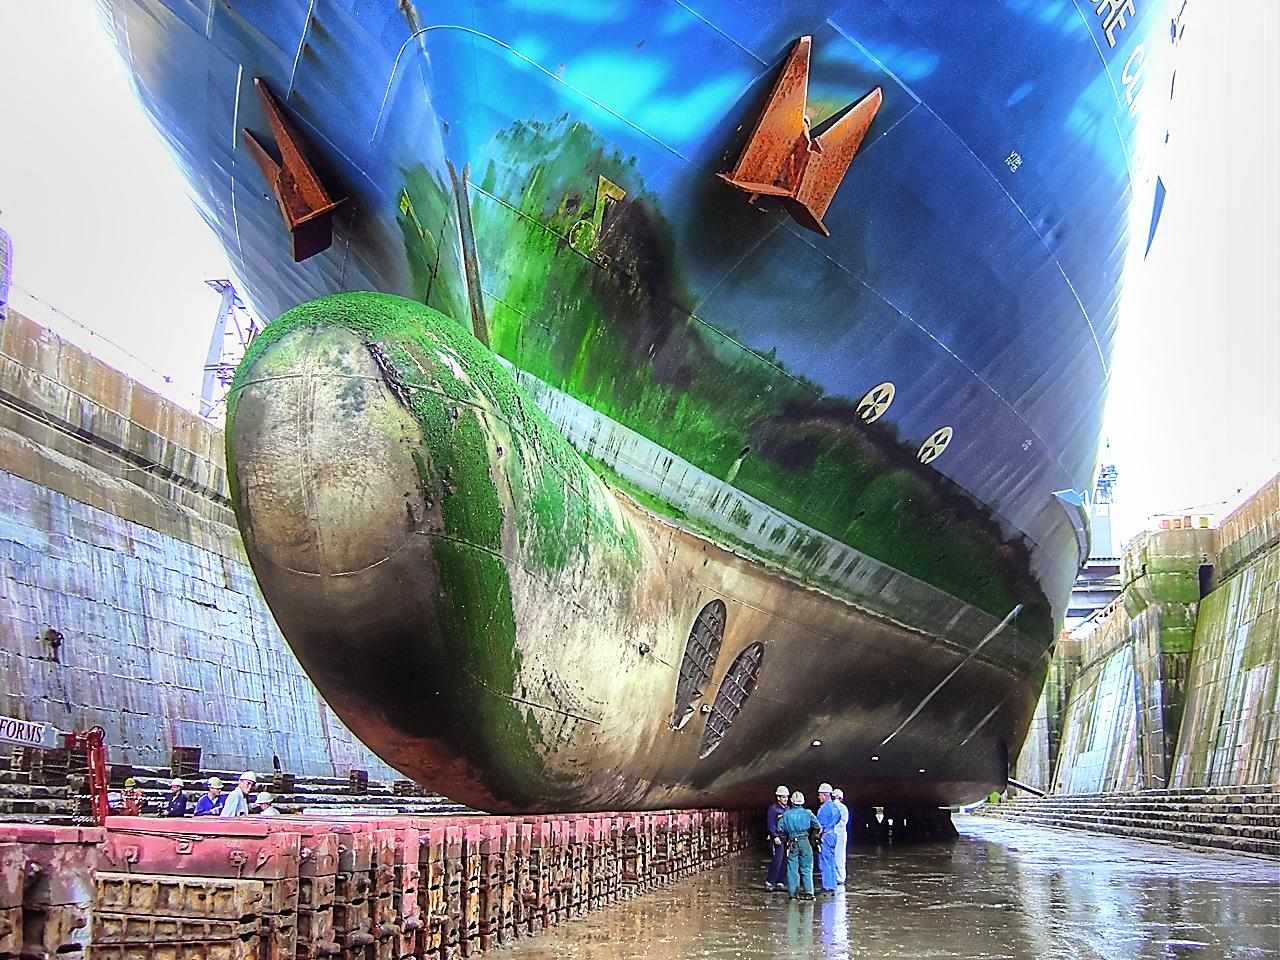 ship in drydock with mechanics discussing the green slime on the hull